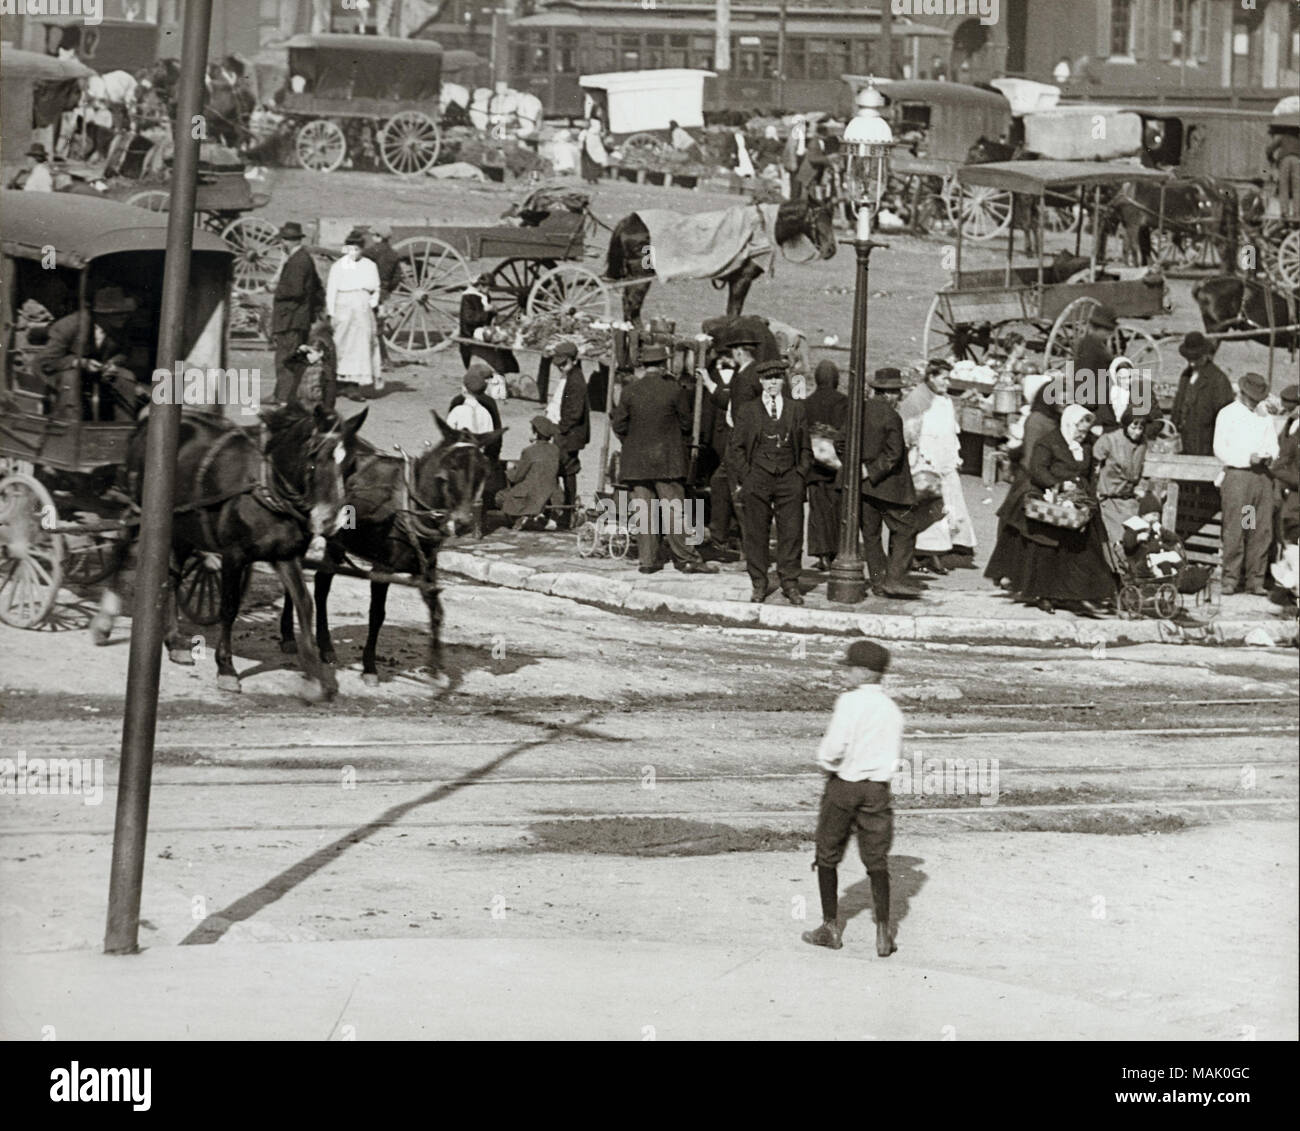 Horizontal black and white photograph of horse drawn carriages and groups of people title eighth street soulard market with crowds 1910